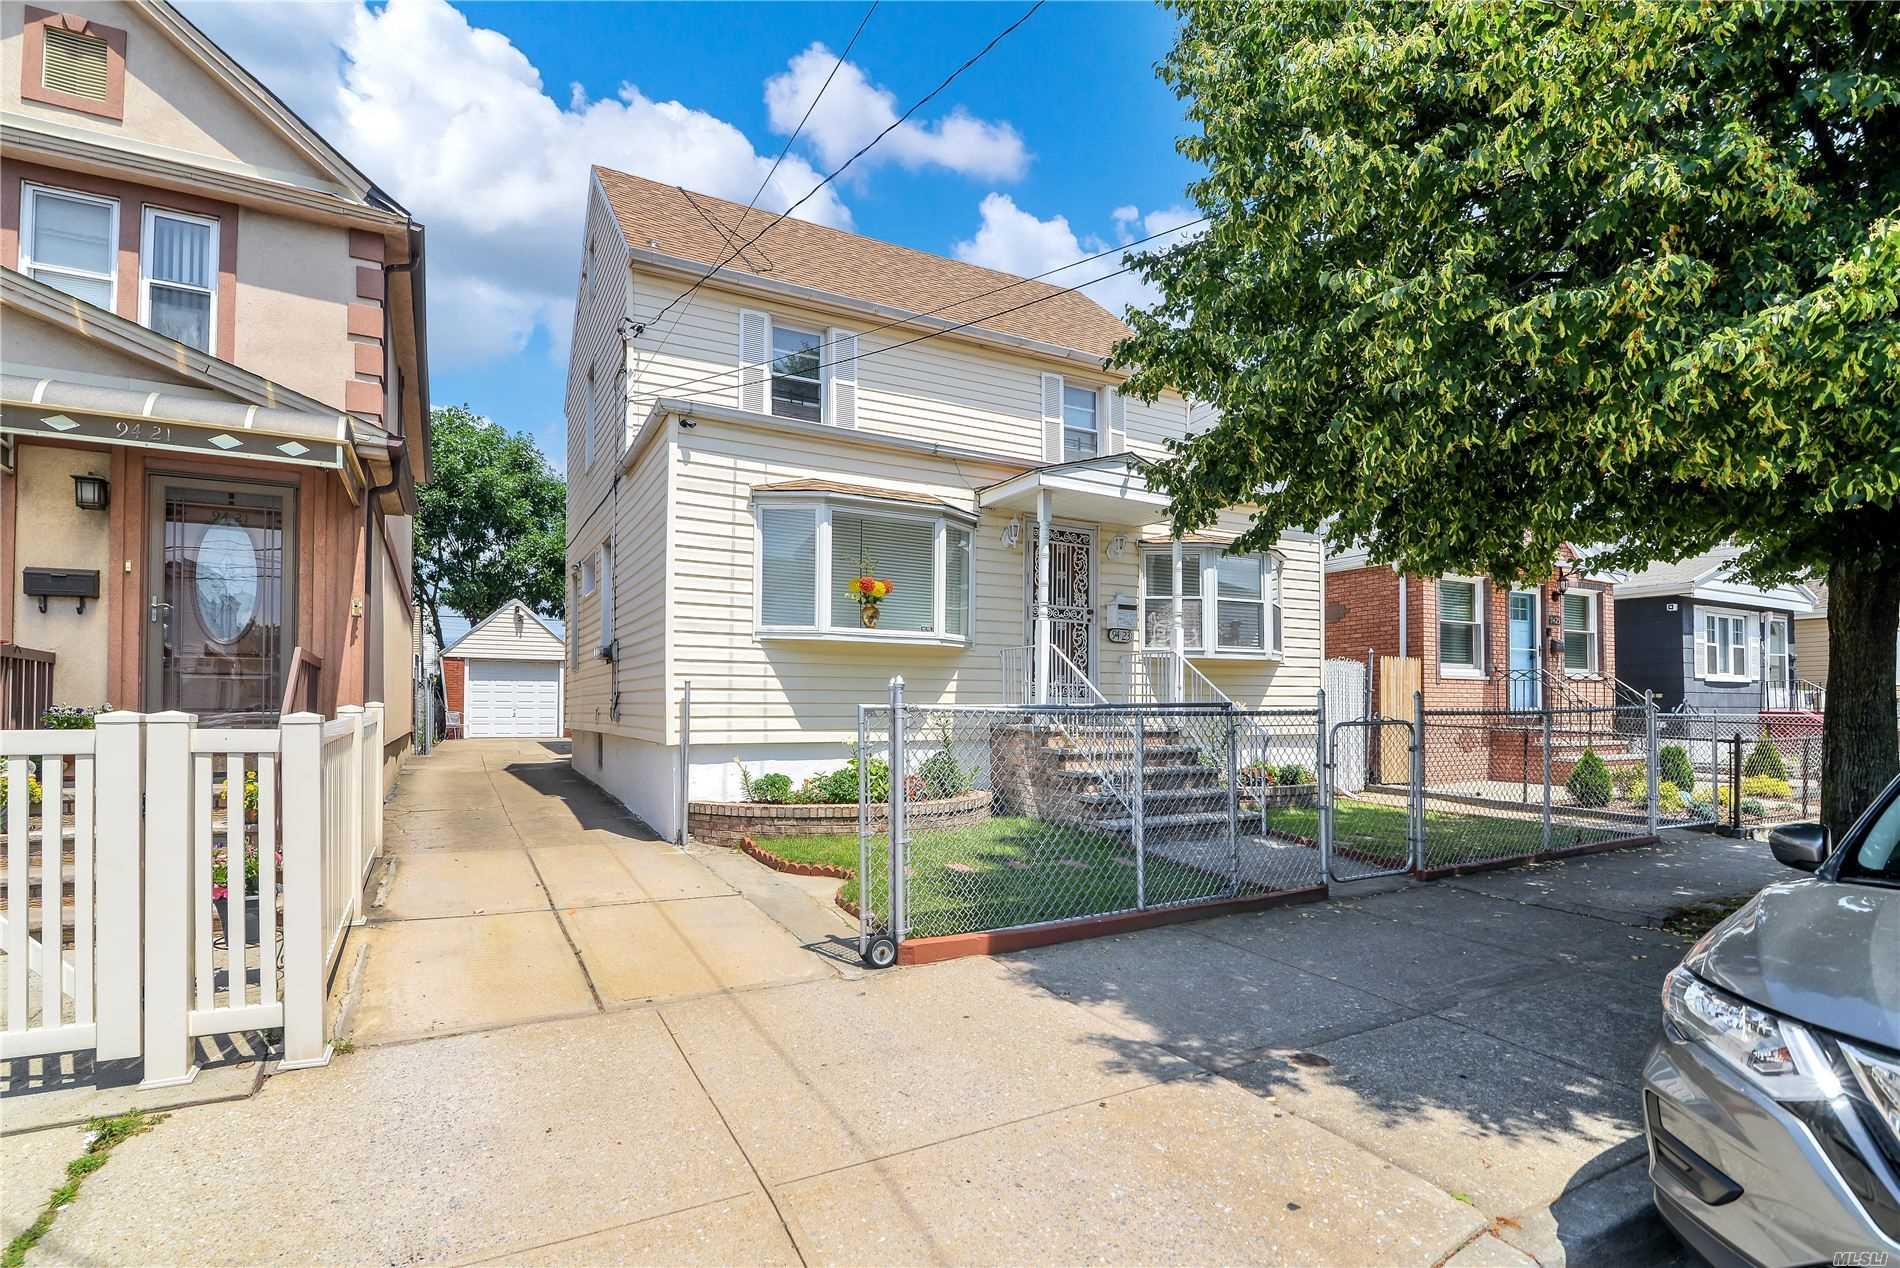 Property for sale at 9423 134th Avenue, Ozone Park NY 11417, Ozone Park,  New York 11417